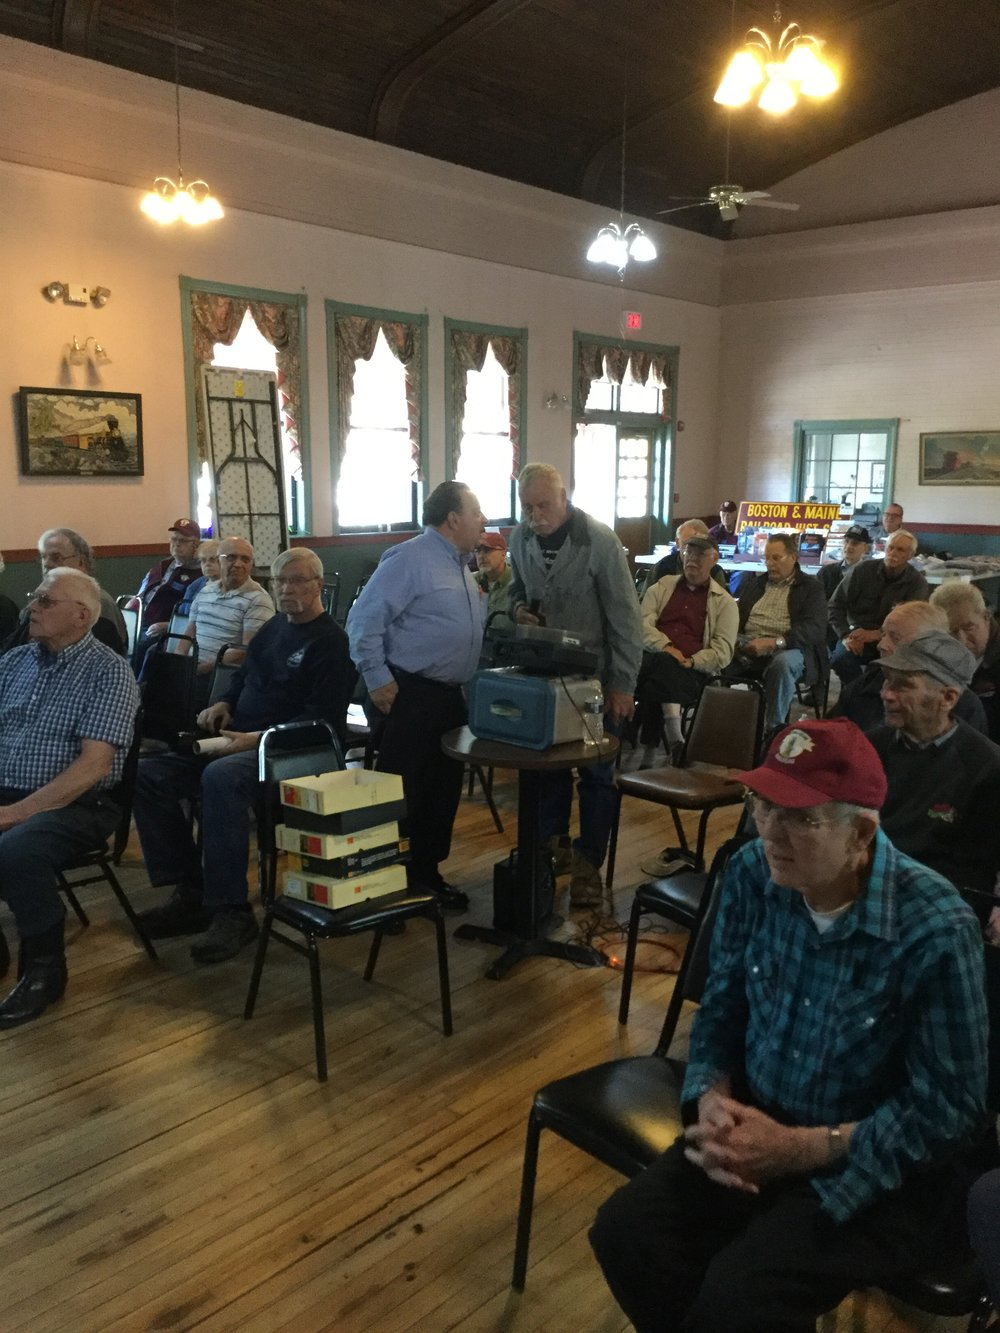 Gary Gurske presents his rail adventures at the Boston & Maine Railroad Historical Society's meeting Plymouth, N.H., May 12, 2018. Staff Photo.